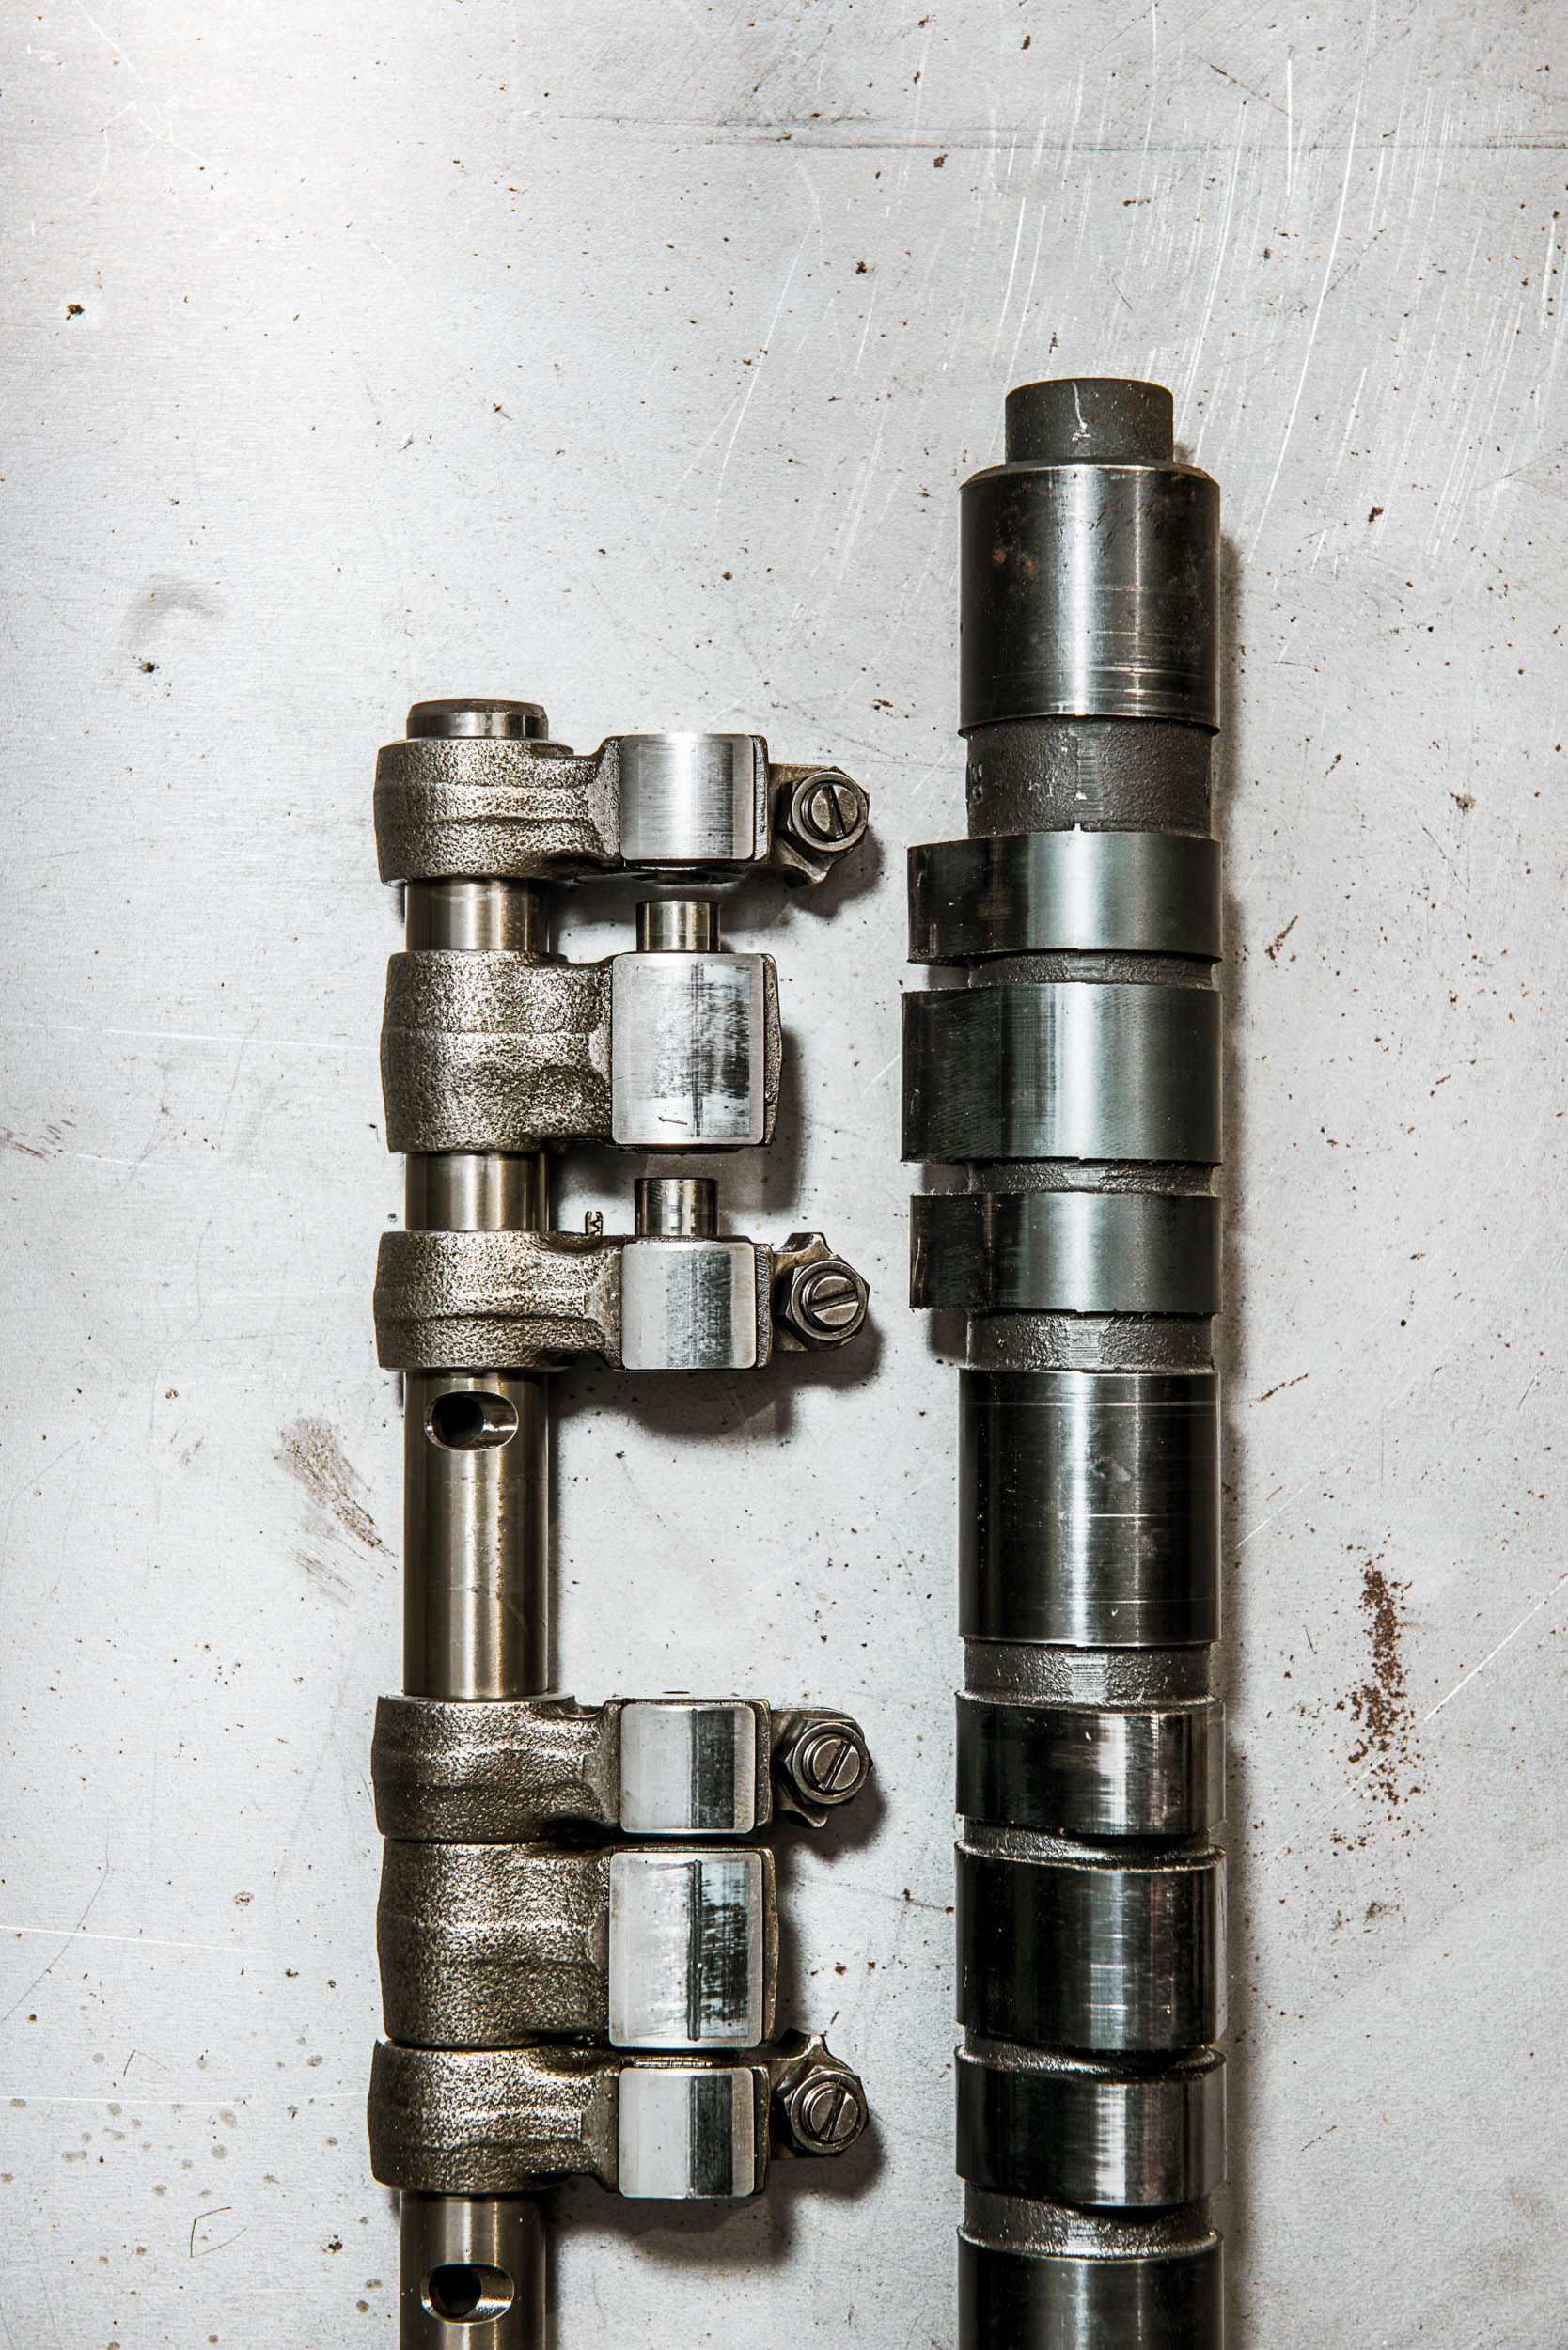 The top rocker arms to the left of the camshaft are spread apart to reveal the pins that link them together when actuated by oil pressure. The bottom set of rockers are arranged the way they lie in the engine.